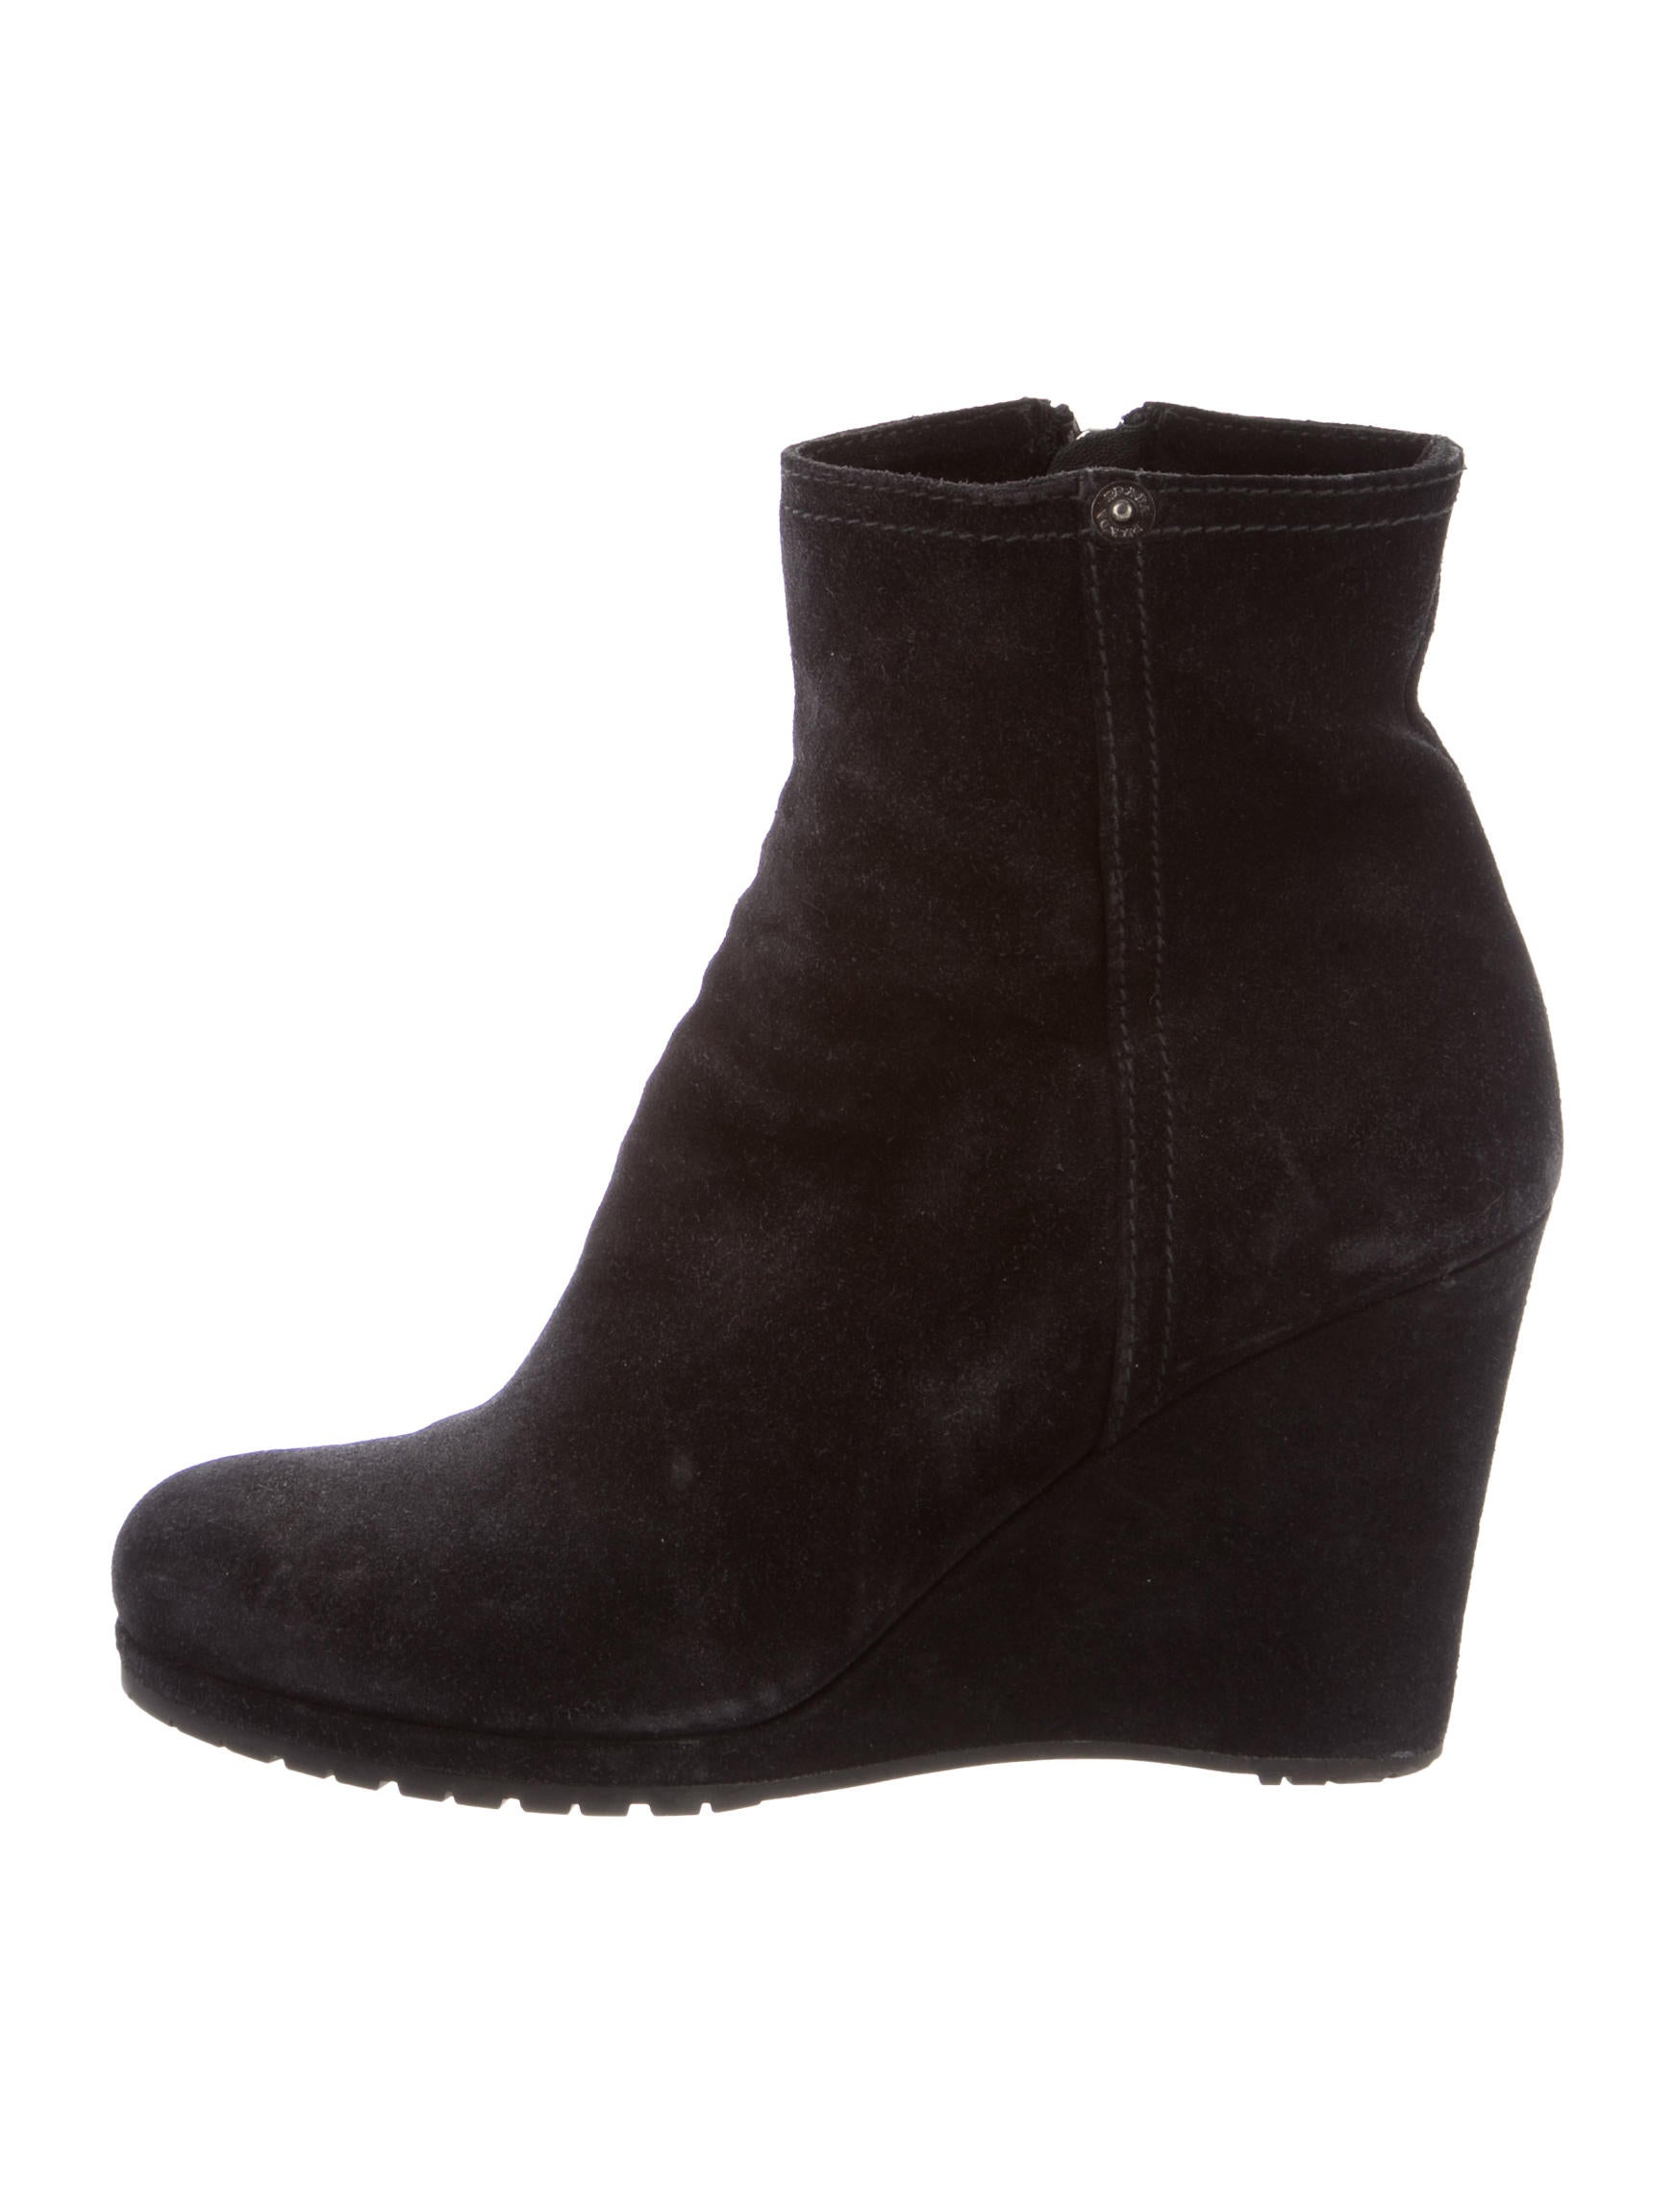 prada suede toe ankle boots shoes pra93743 the